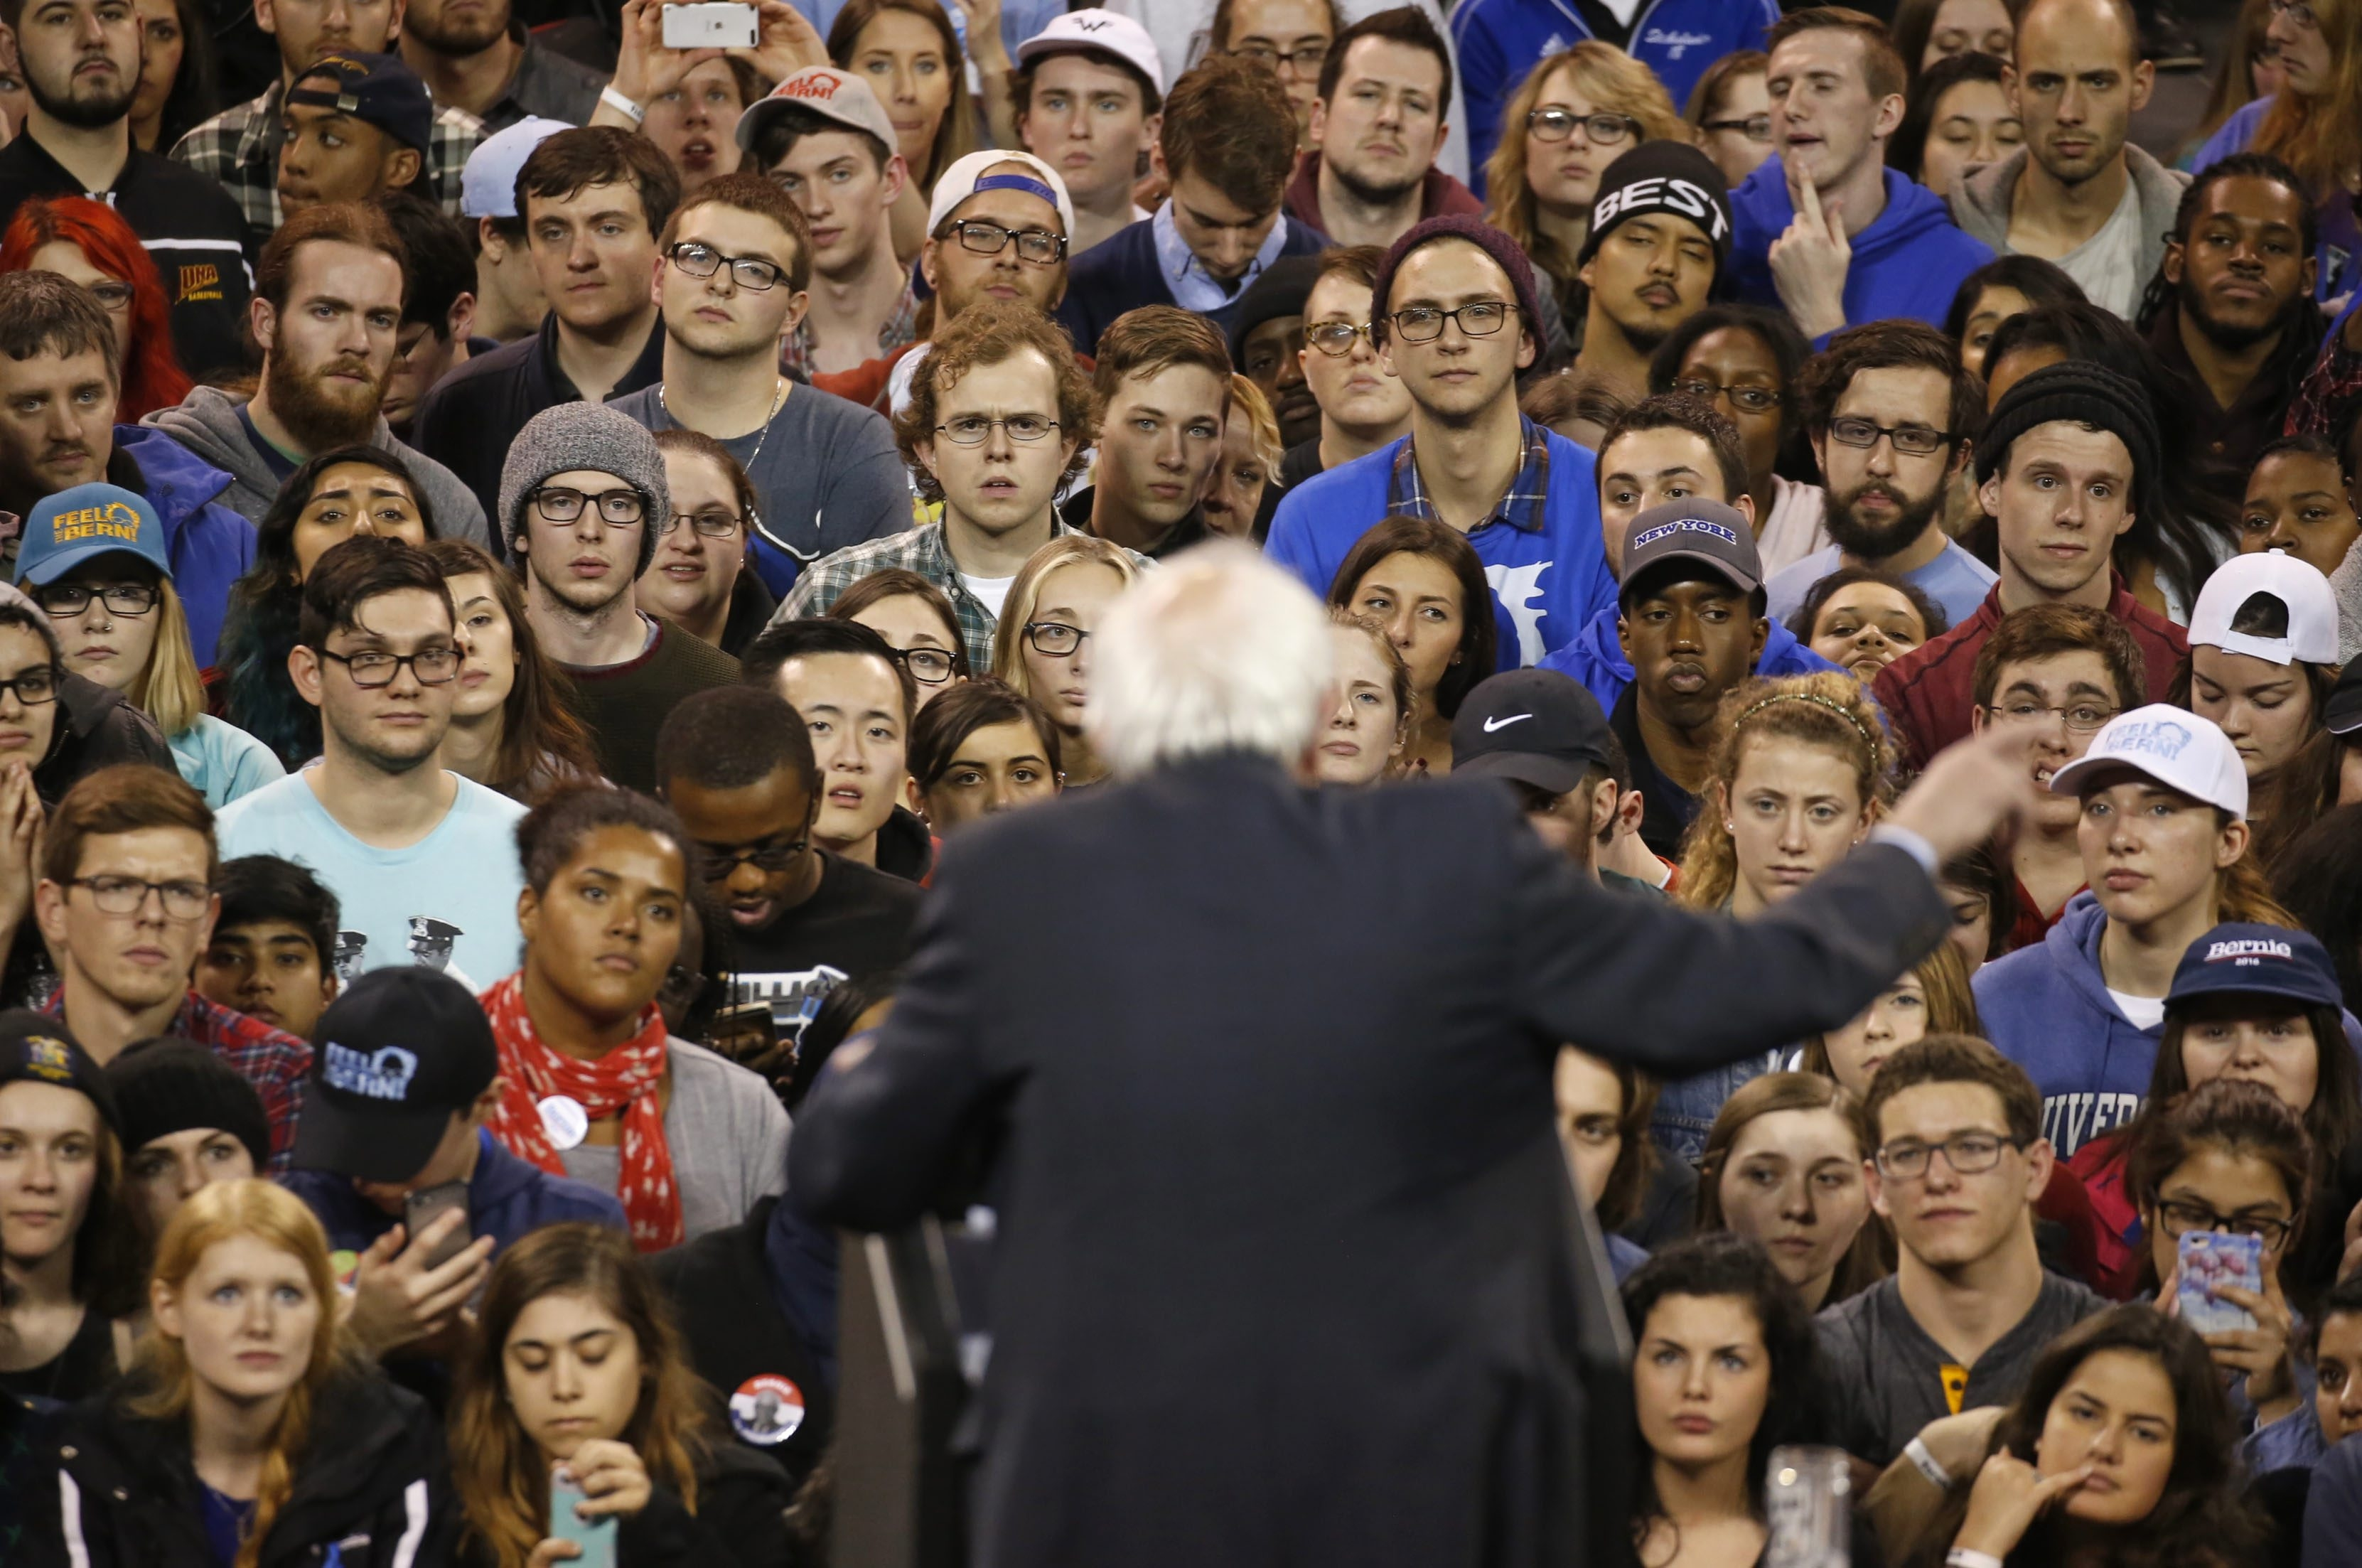 Presidential candidate Bernie Sanders speaks Monday at a rally at Alumni Arena on the University at Buffalo's North Campus.  The Vermont senator energized the mostly young crowd of his supporters.